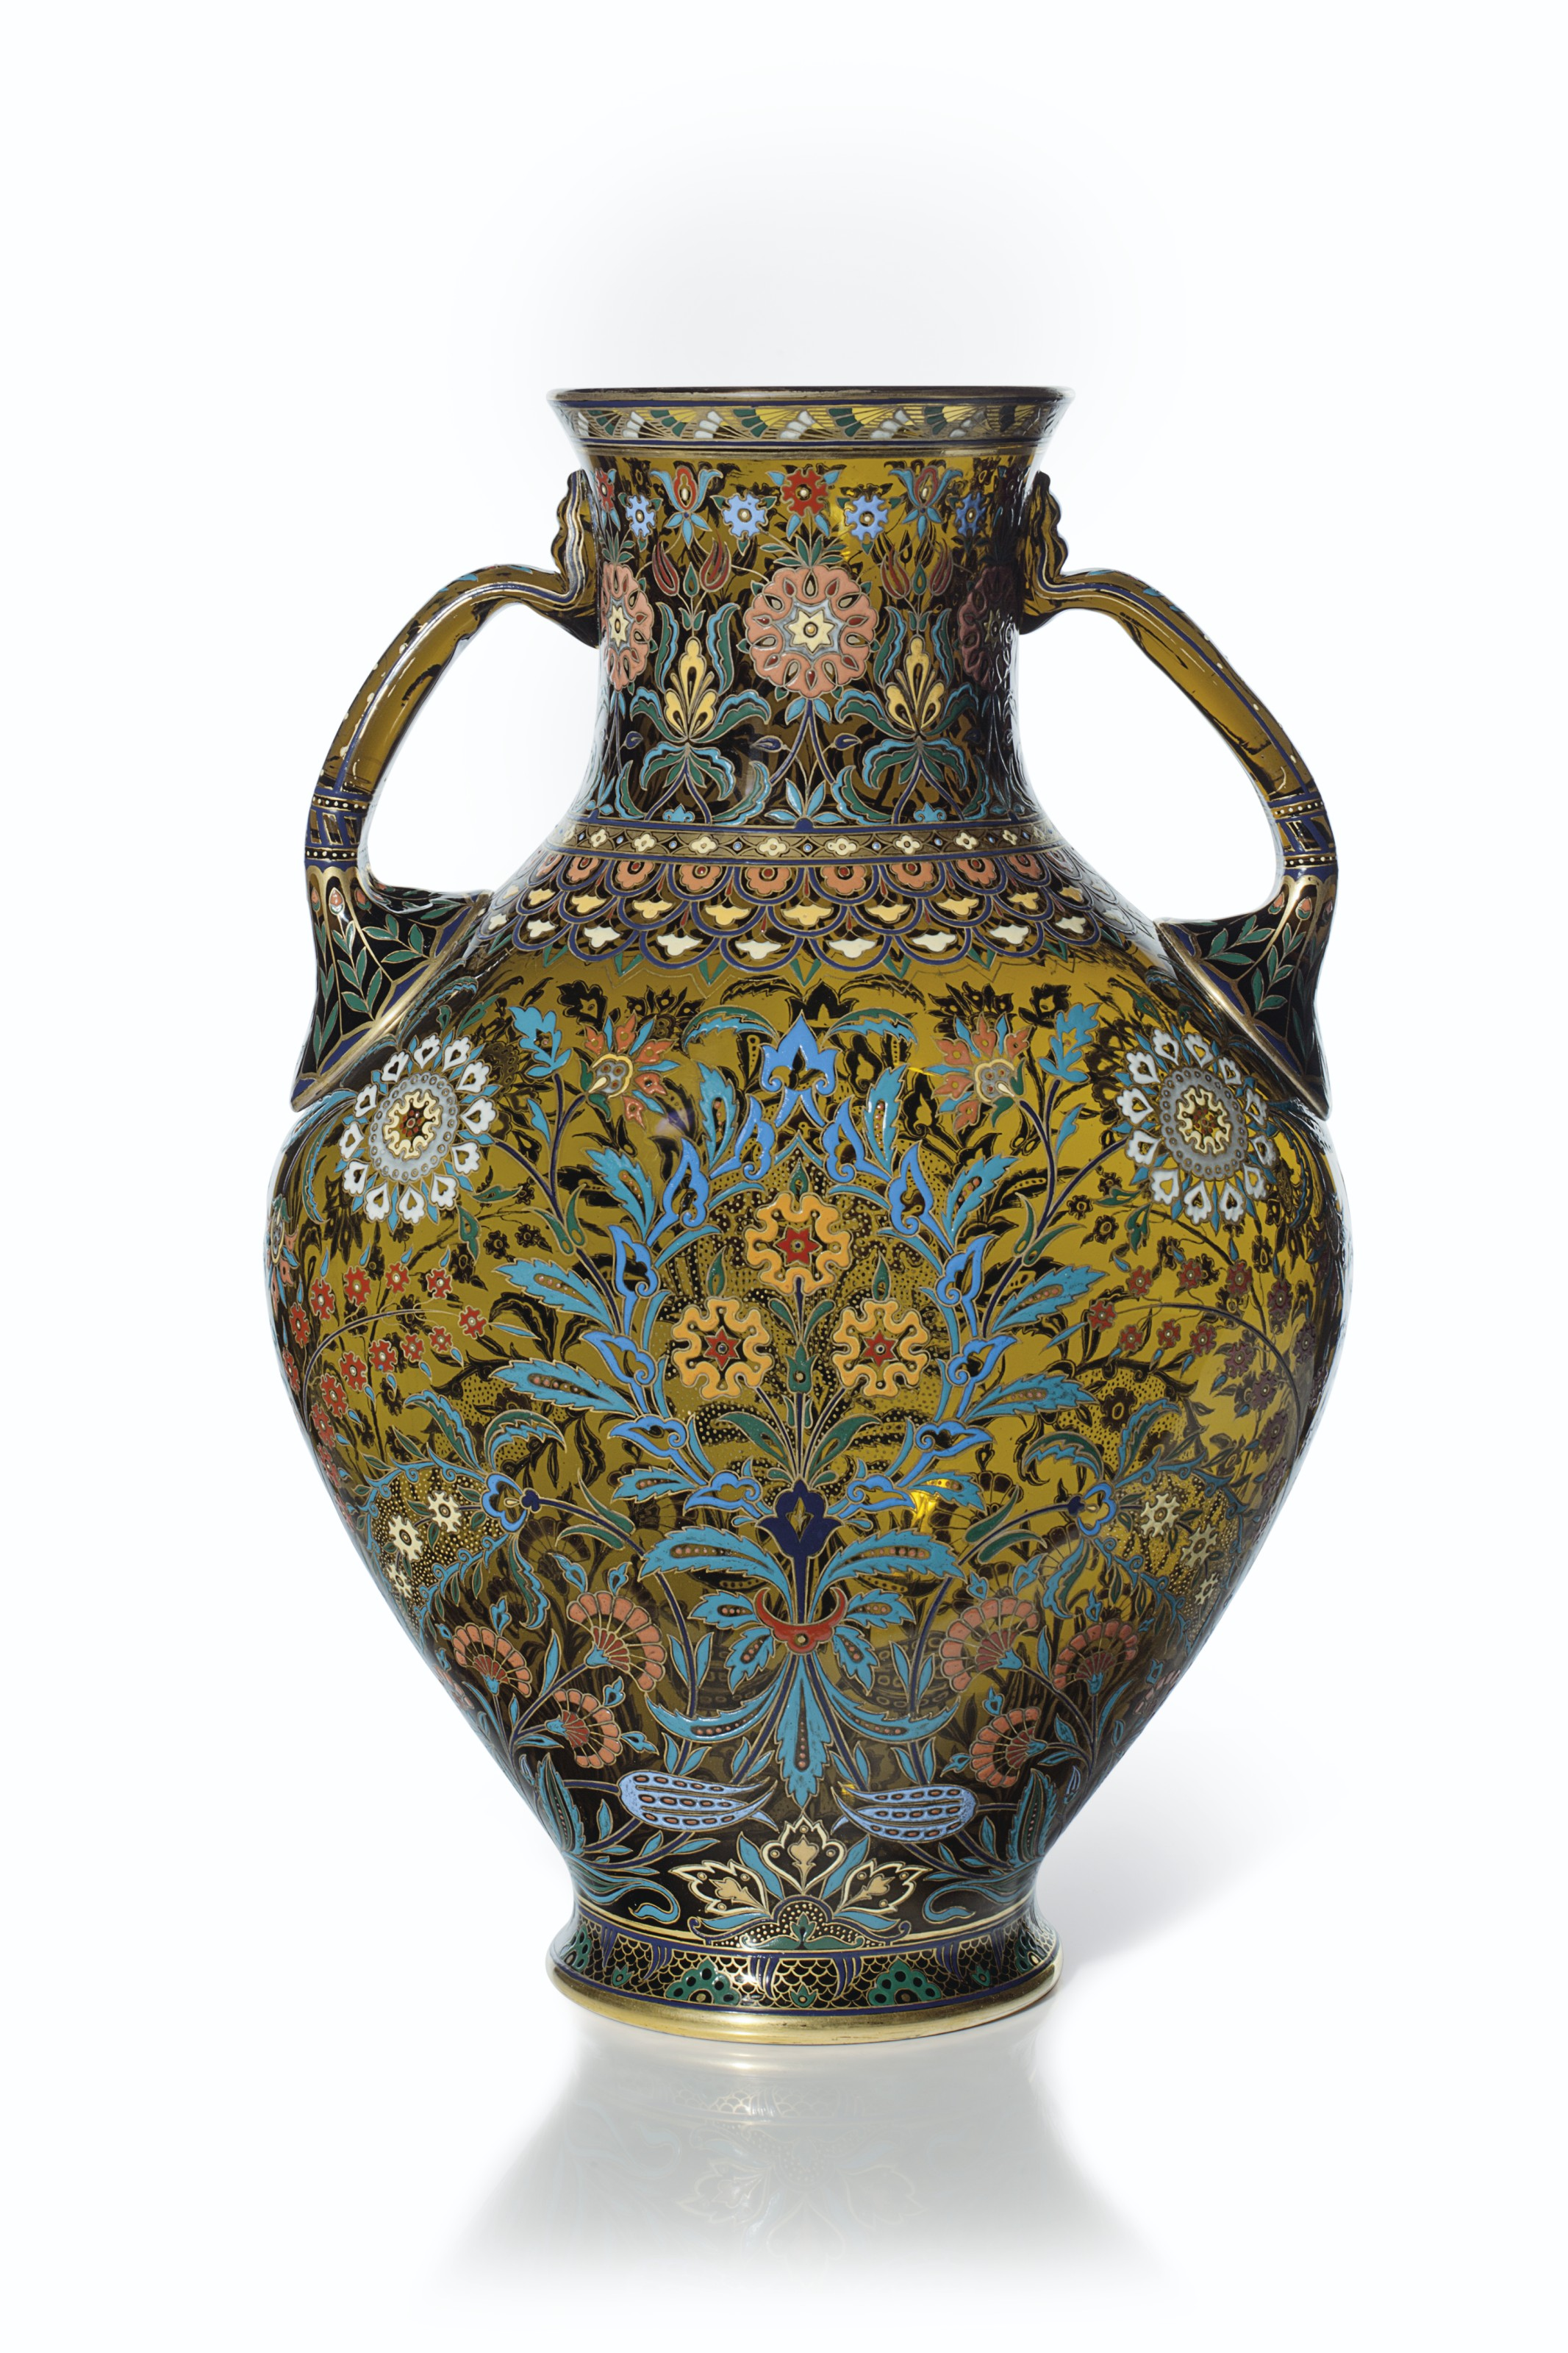 A LARGE J. & L. LOBMEYR TWO-HANDLED ENAMELED 'PERSIAN STYLE' AMBER GLASS VASE